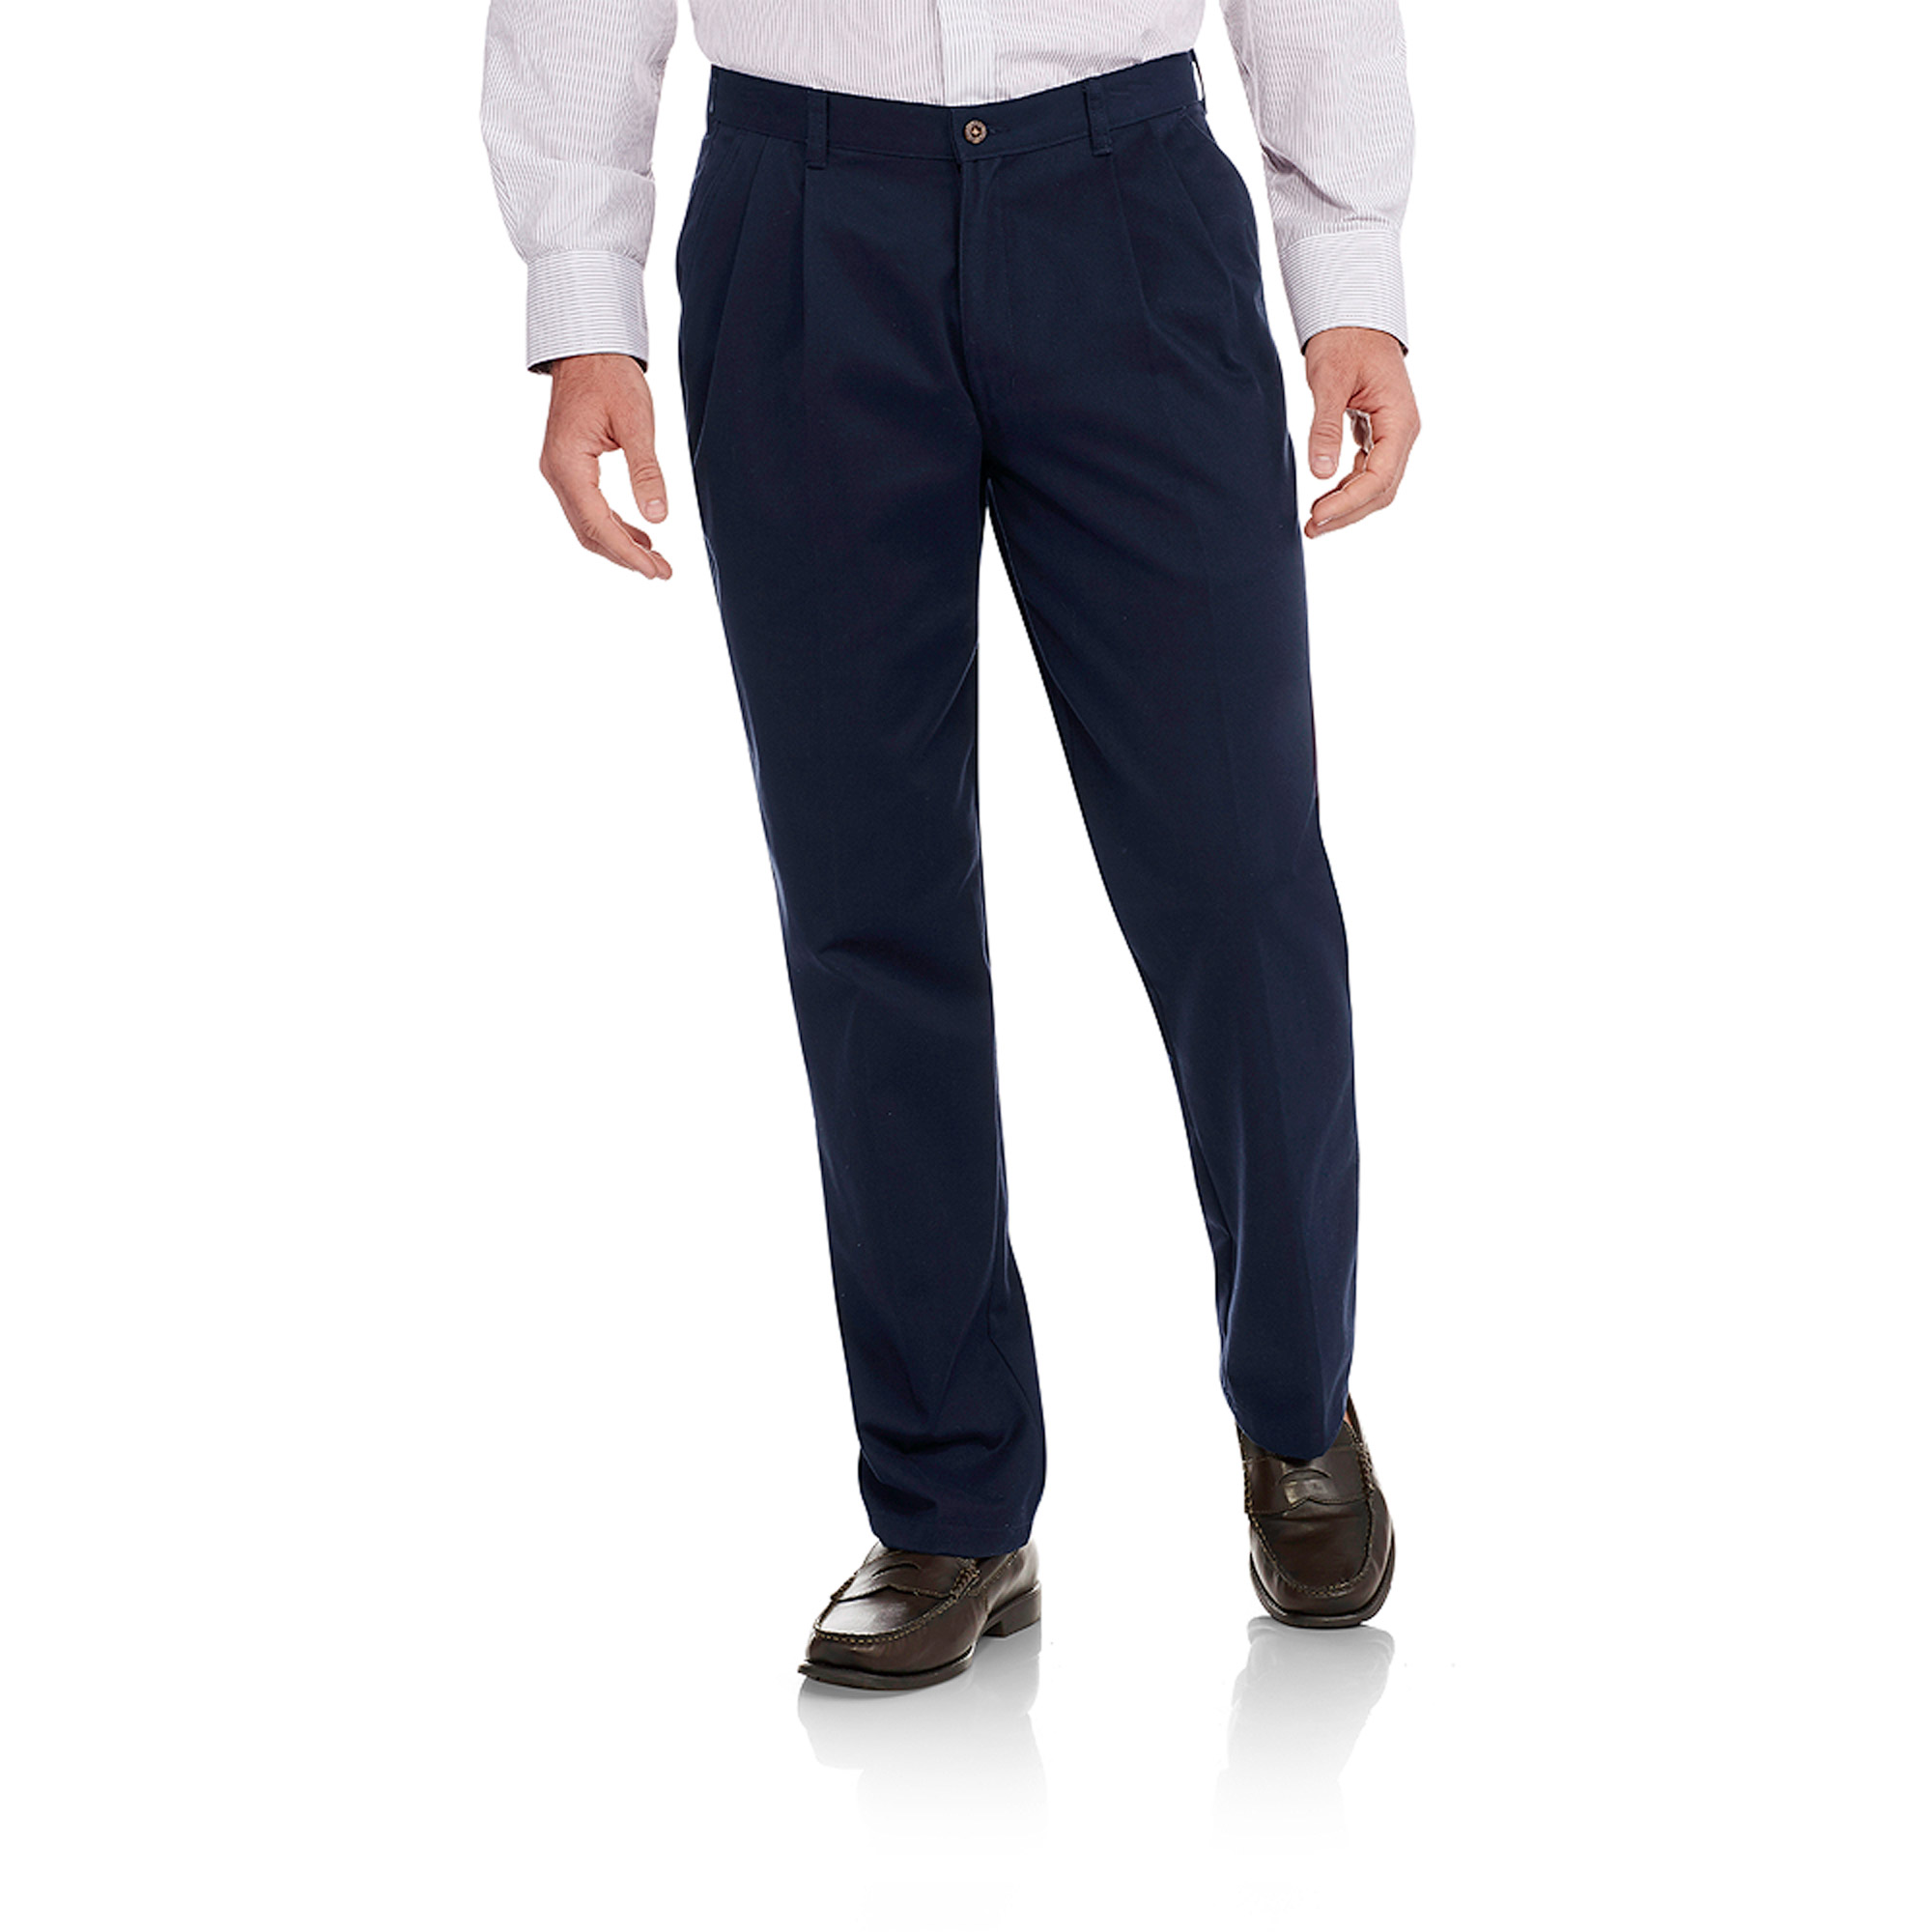 Men's Wrinkle Resistant Pleated 100% Cotton Twill Pant with Scotchgard